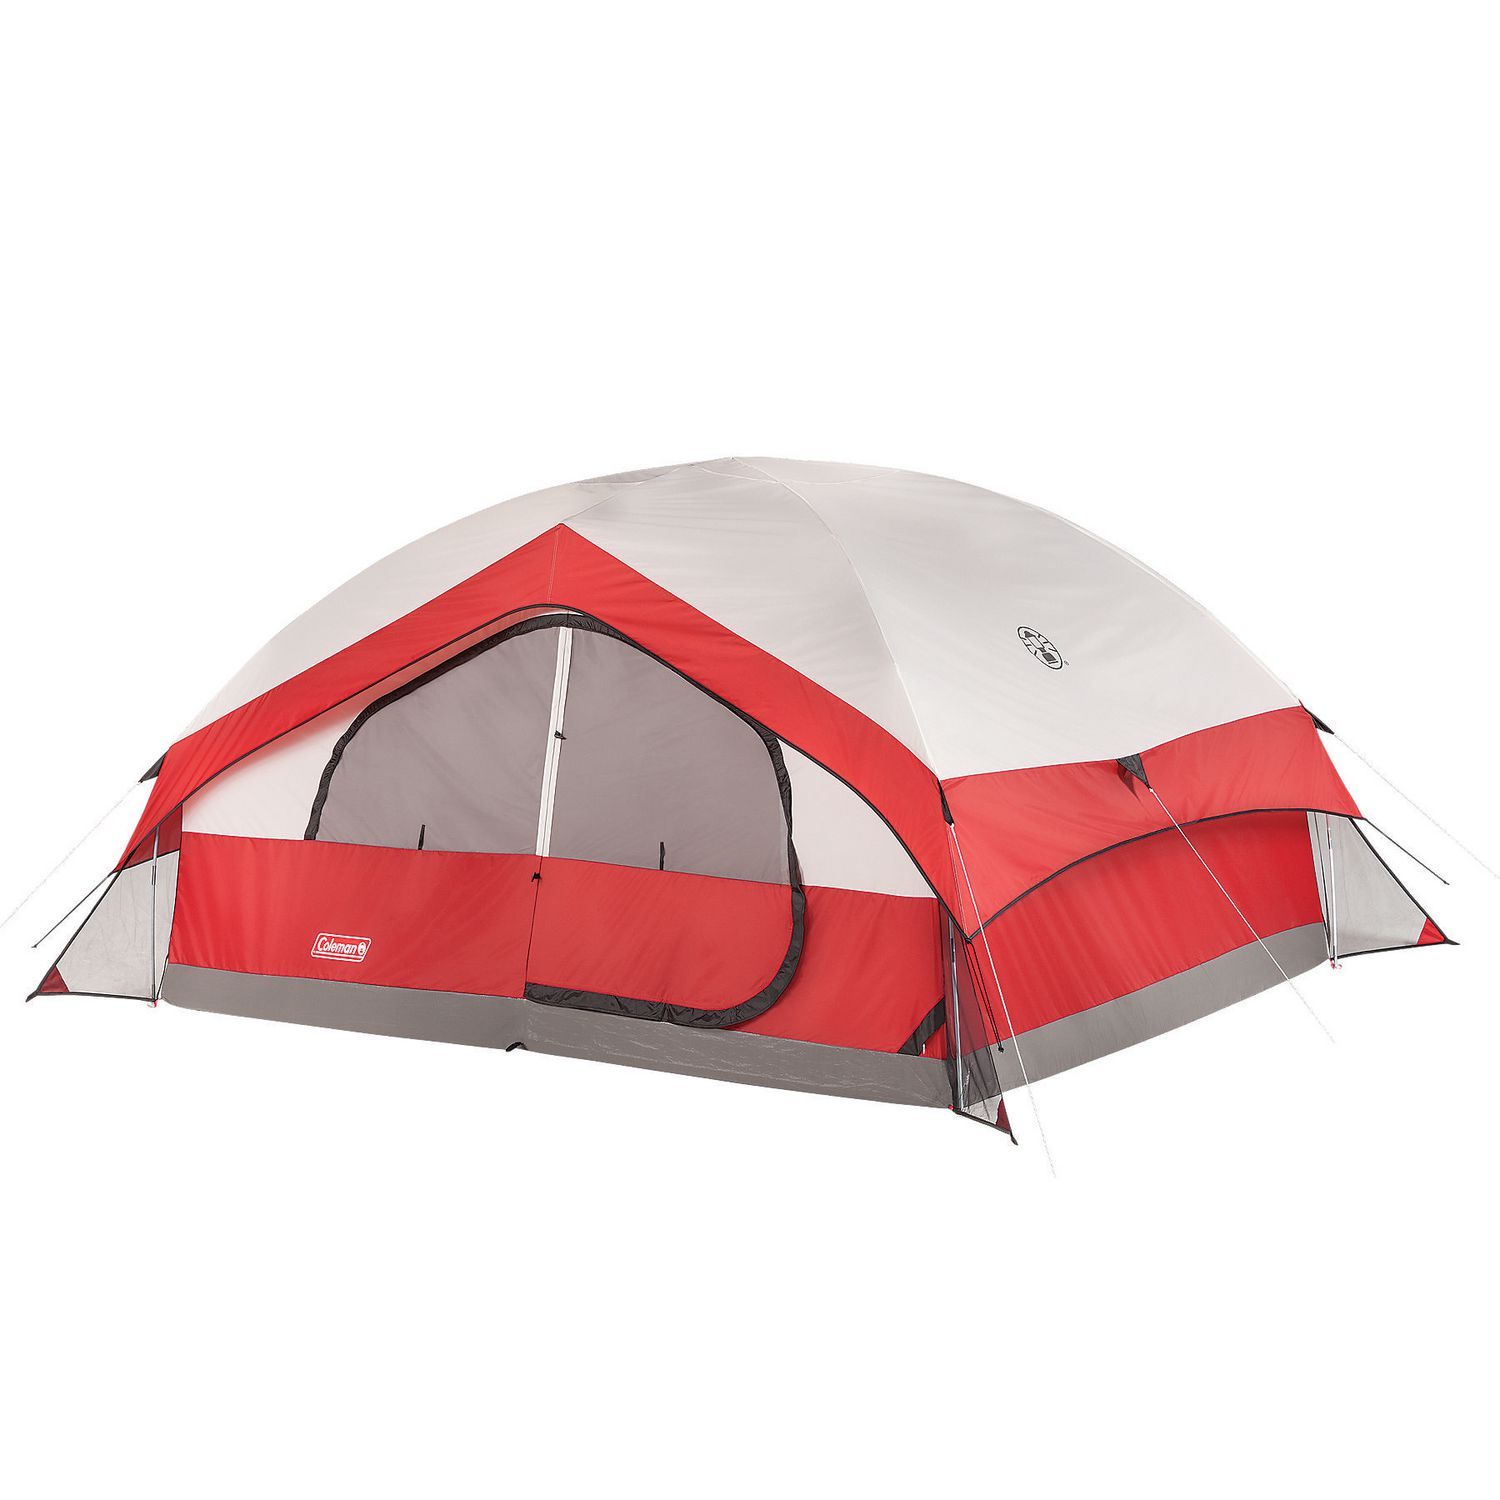 acbe599a8b7 Coleman 6 Person Grand Valley Tent - image 1 of 1 zoomed image